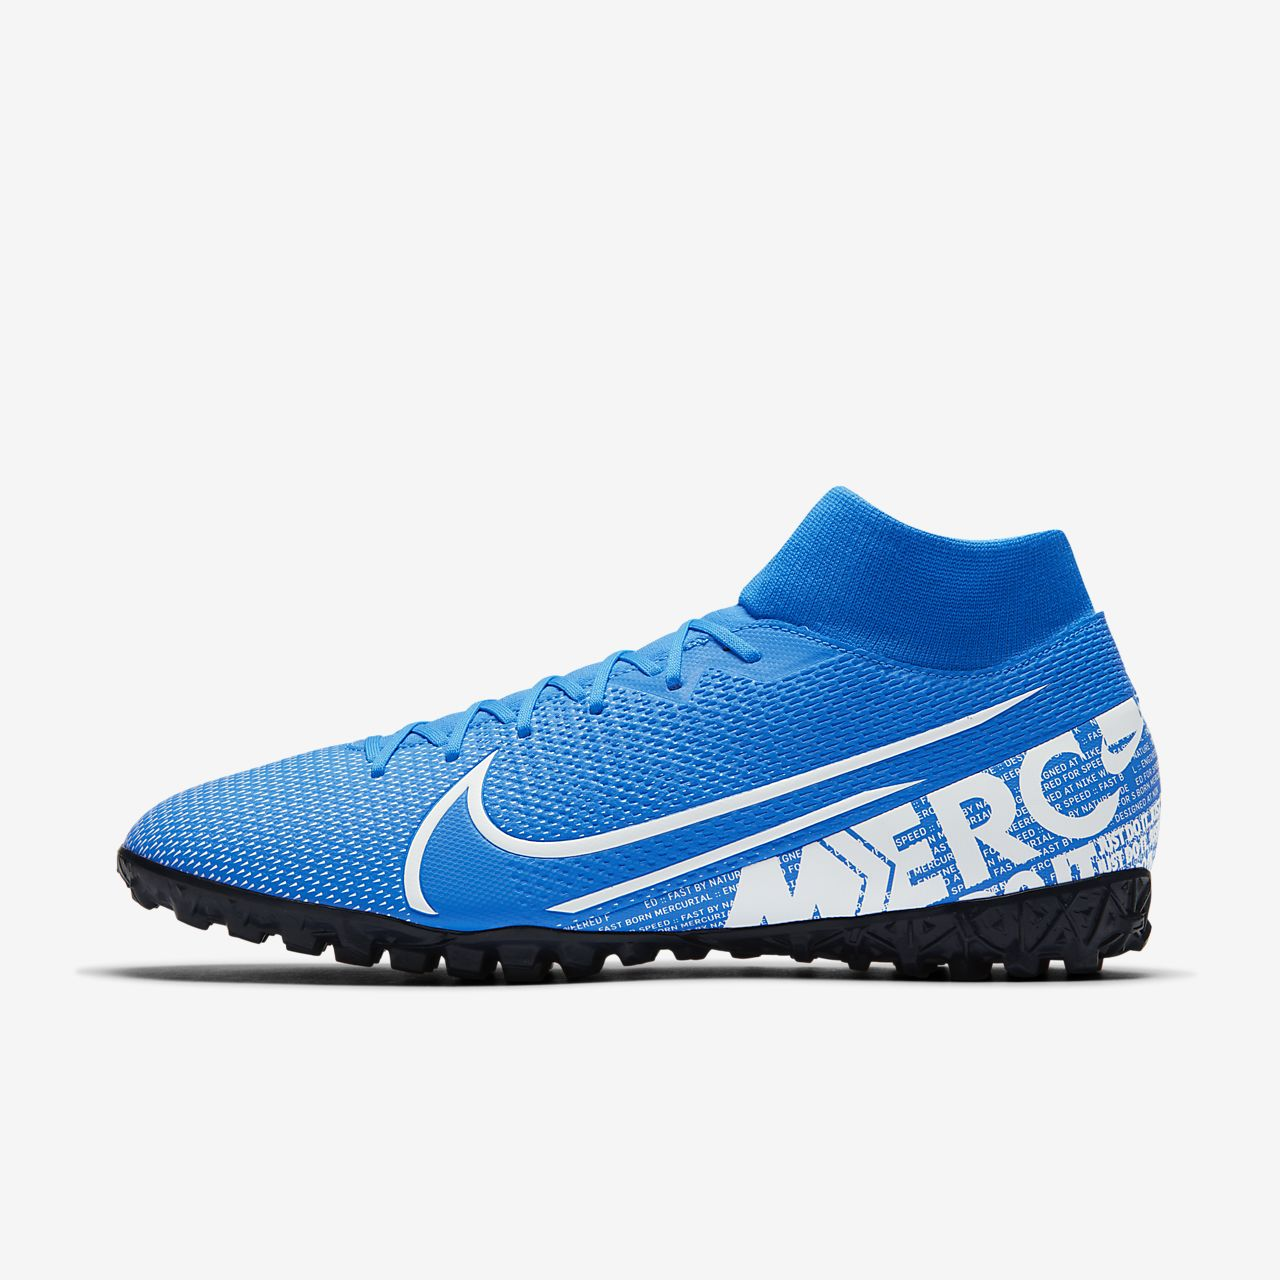 ZAPATILLA FUTBOL NIKE MERCURIAL SUPERFLY 7 ACADEMY TF